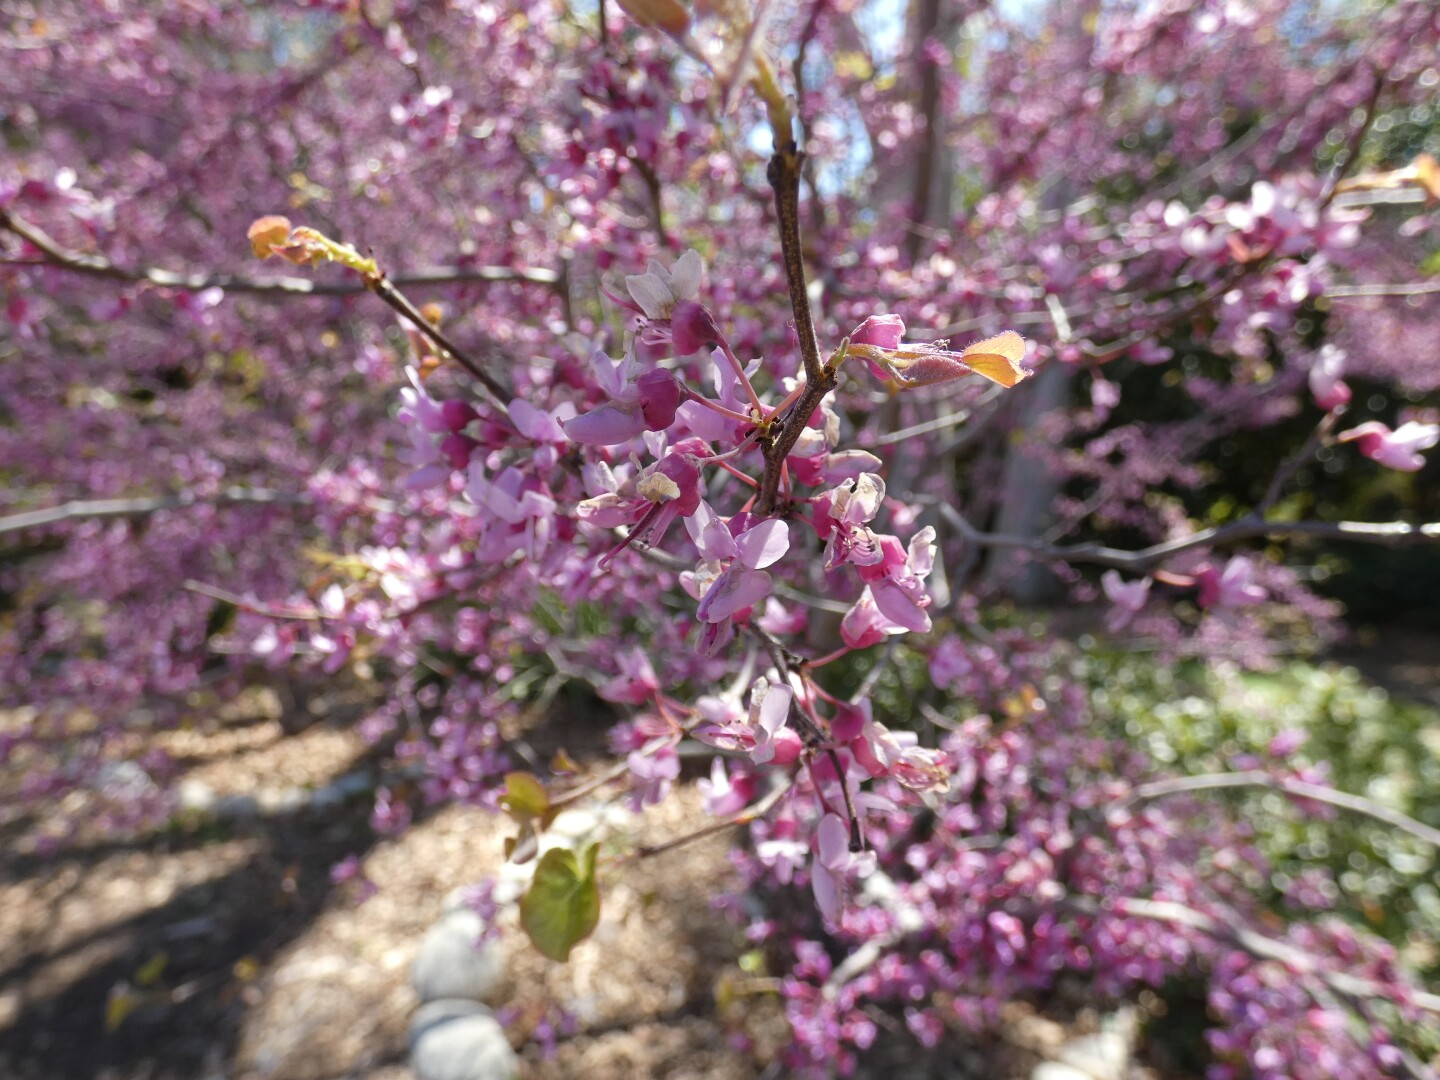 A close-up of the Western redbud blossom at Orcutt Ranch.